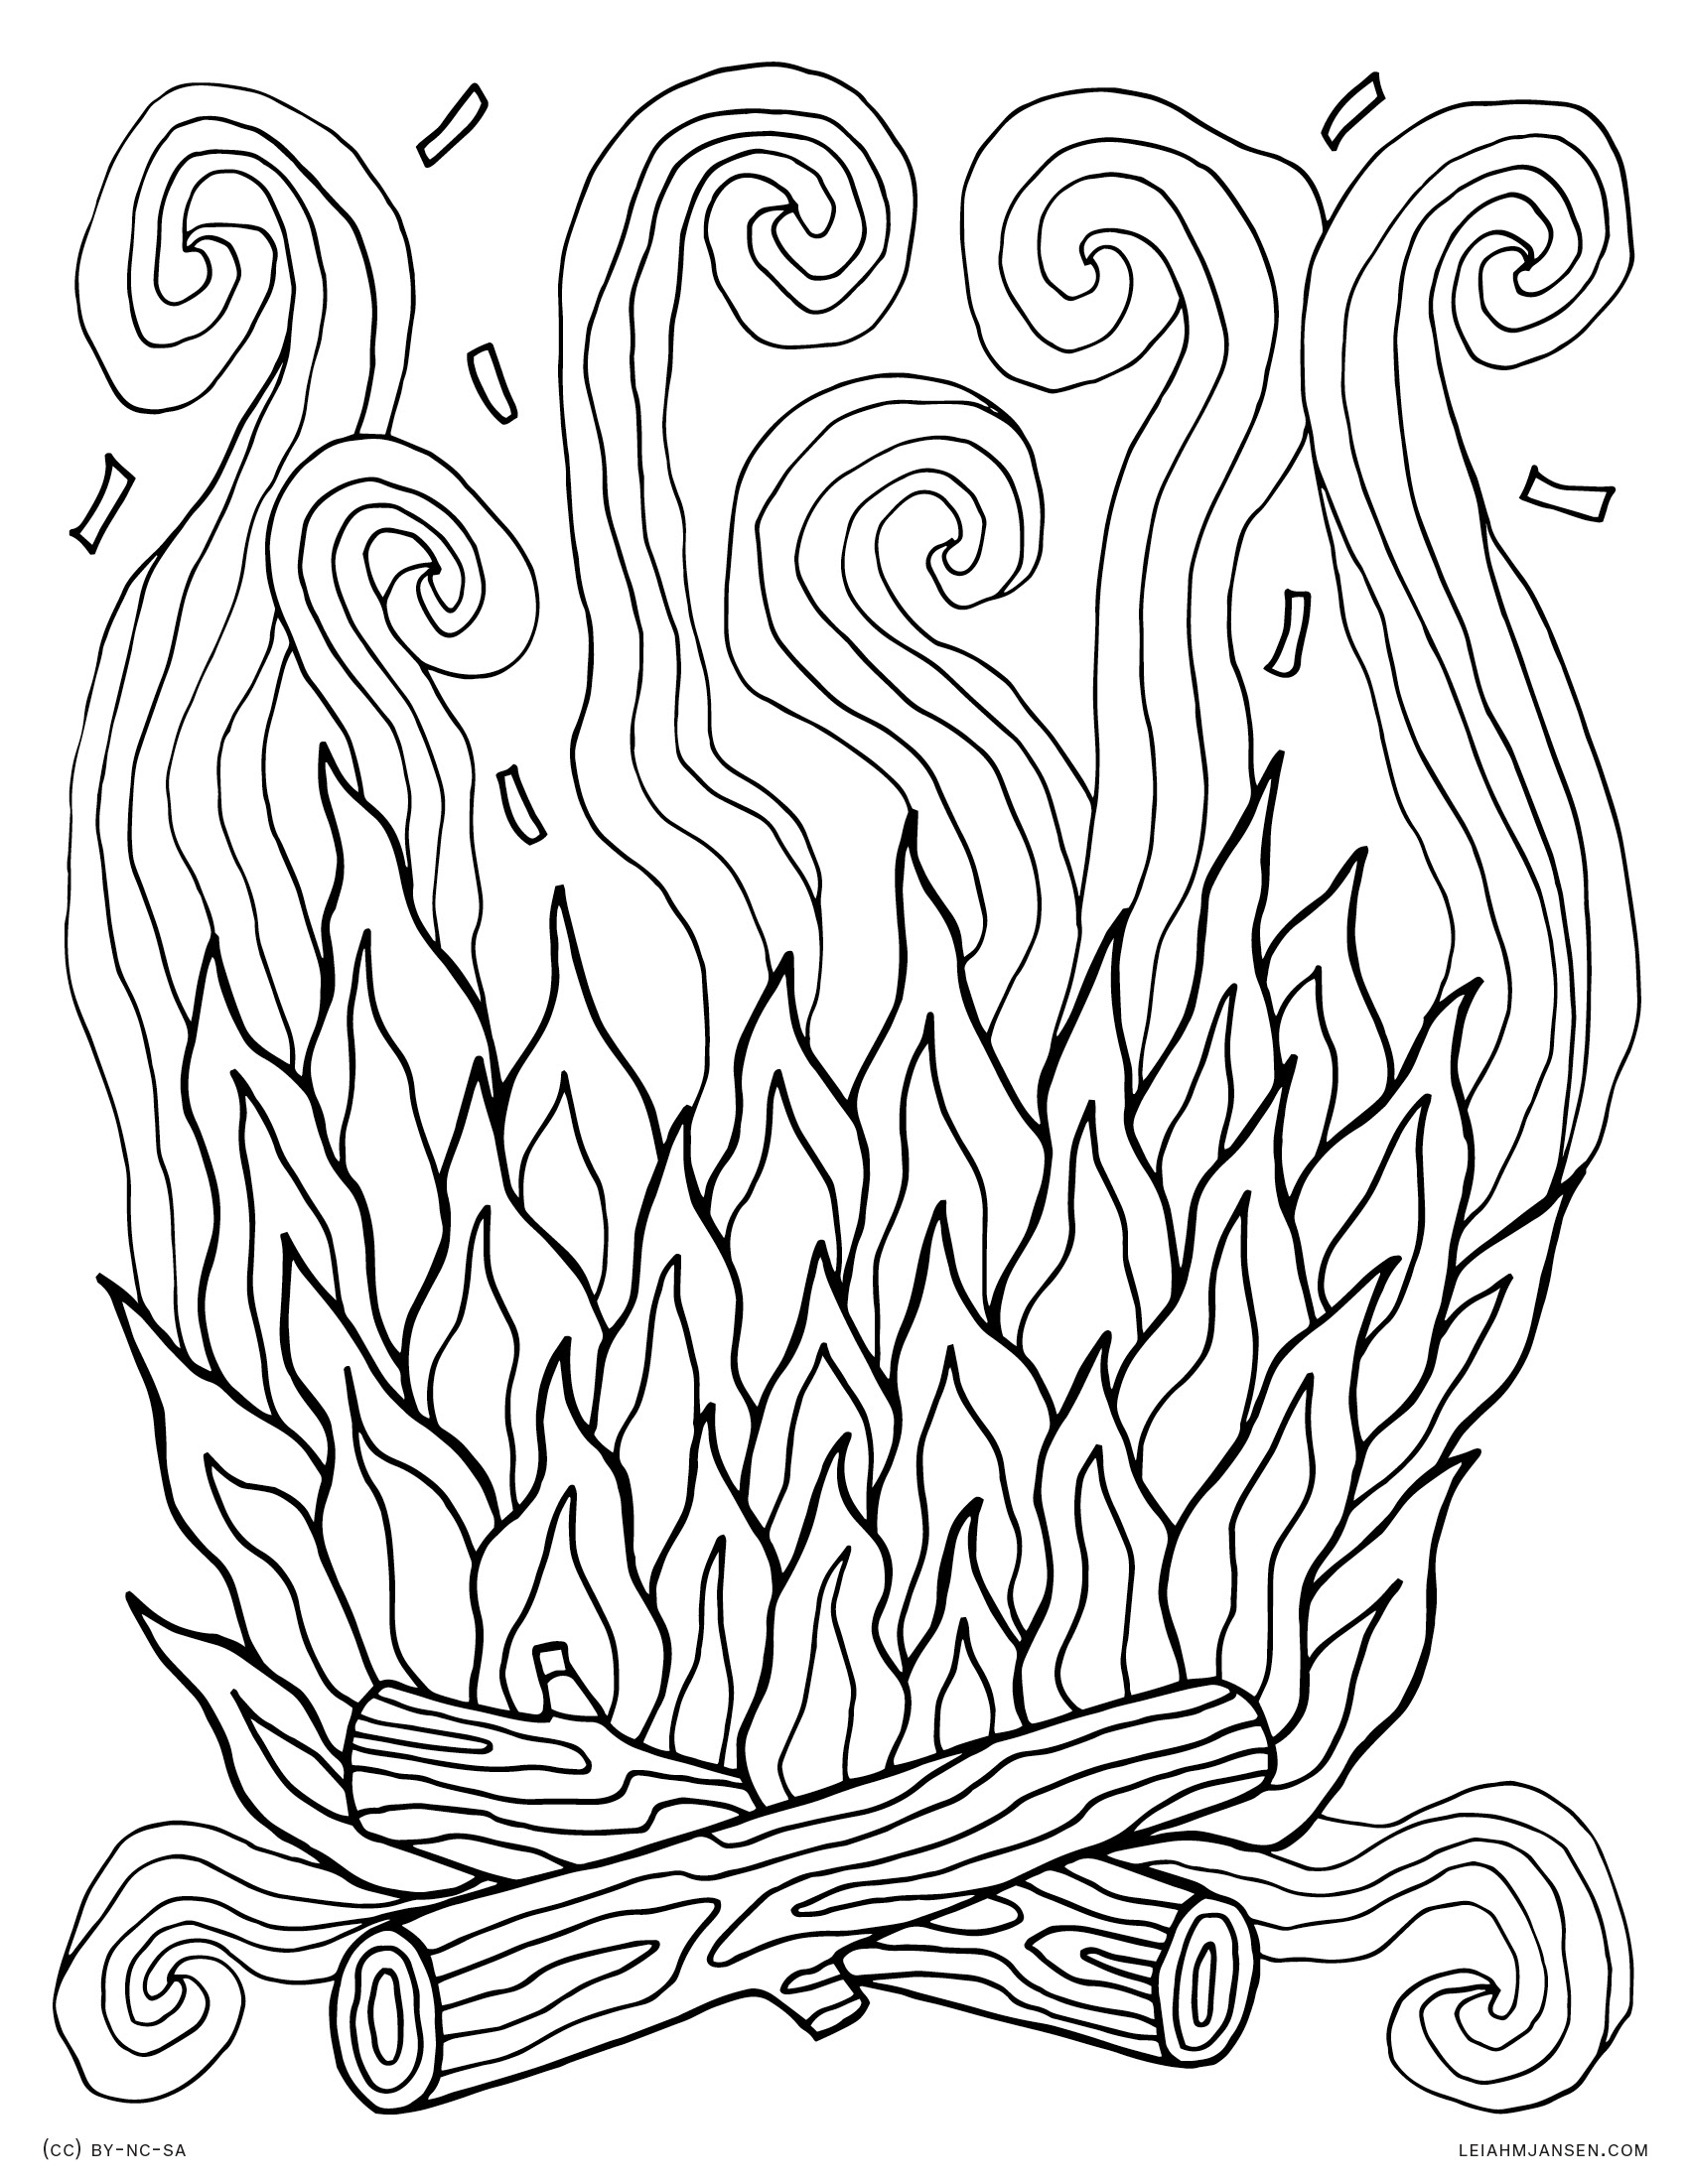 printables coloring pages for adults - photo#21